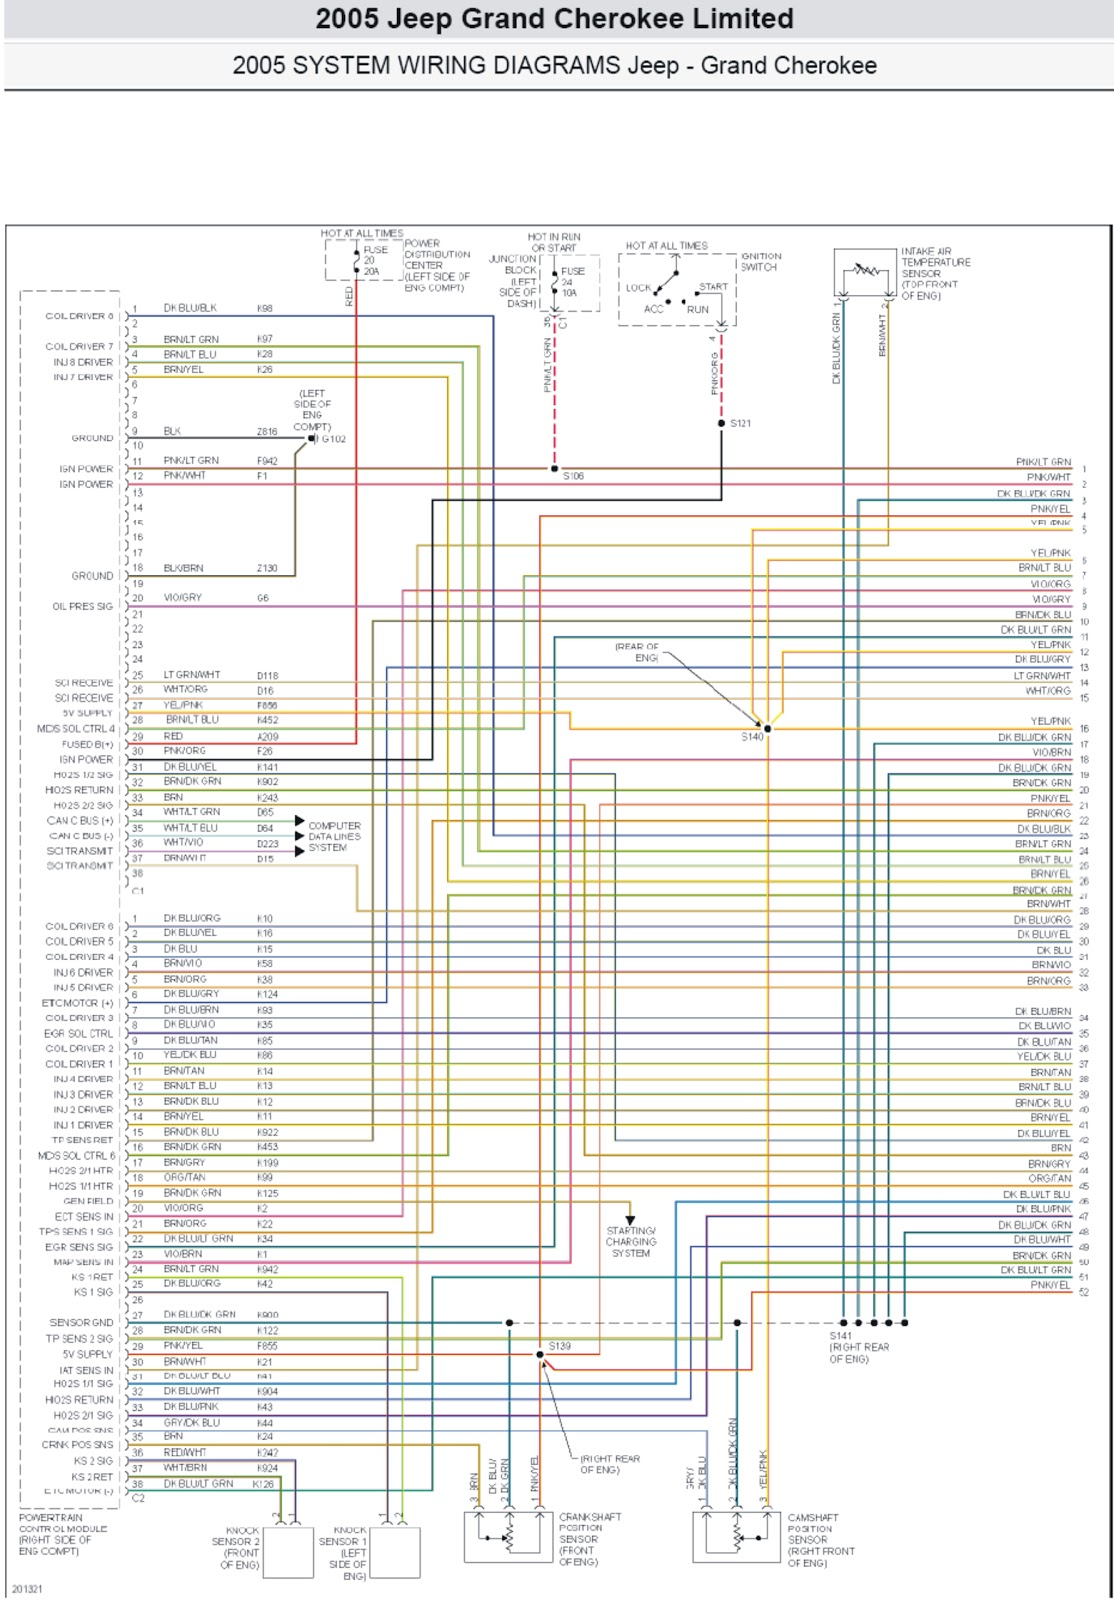 2001 dodge ram 1500 brake light wiring diagram wirdig wiring diagram for 2008 jeep grand cherokee wiring amp engine diagram